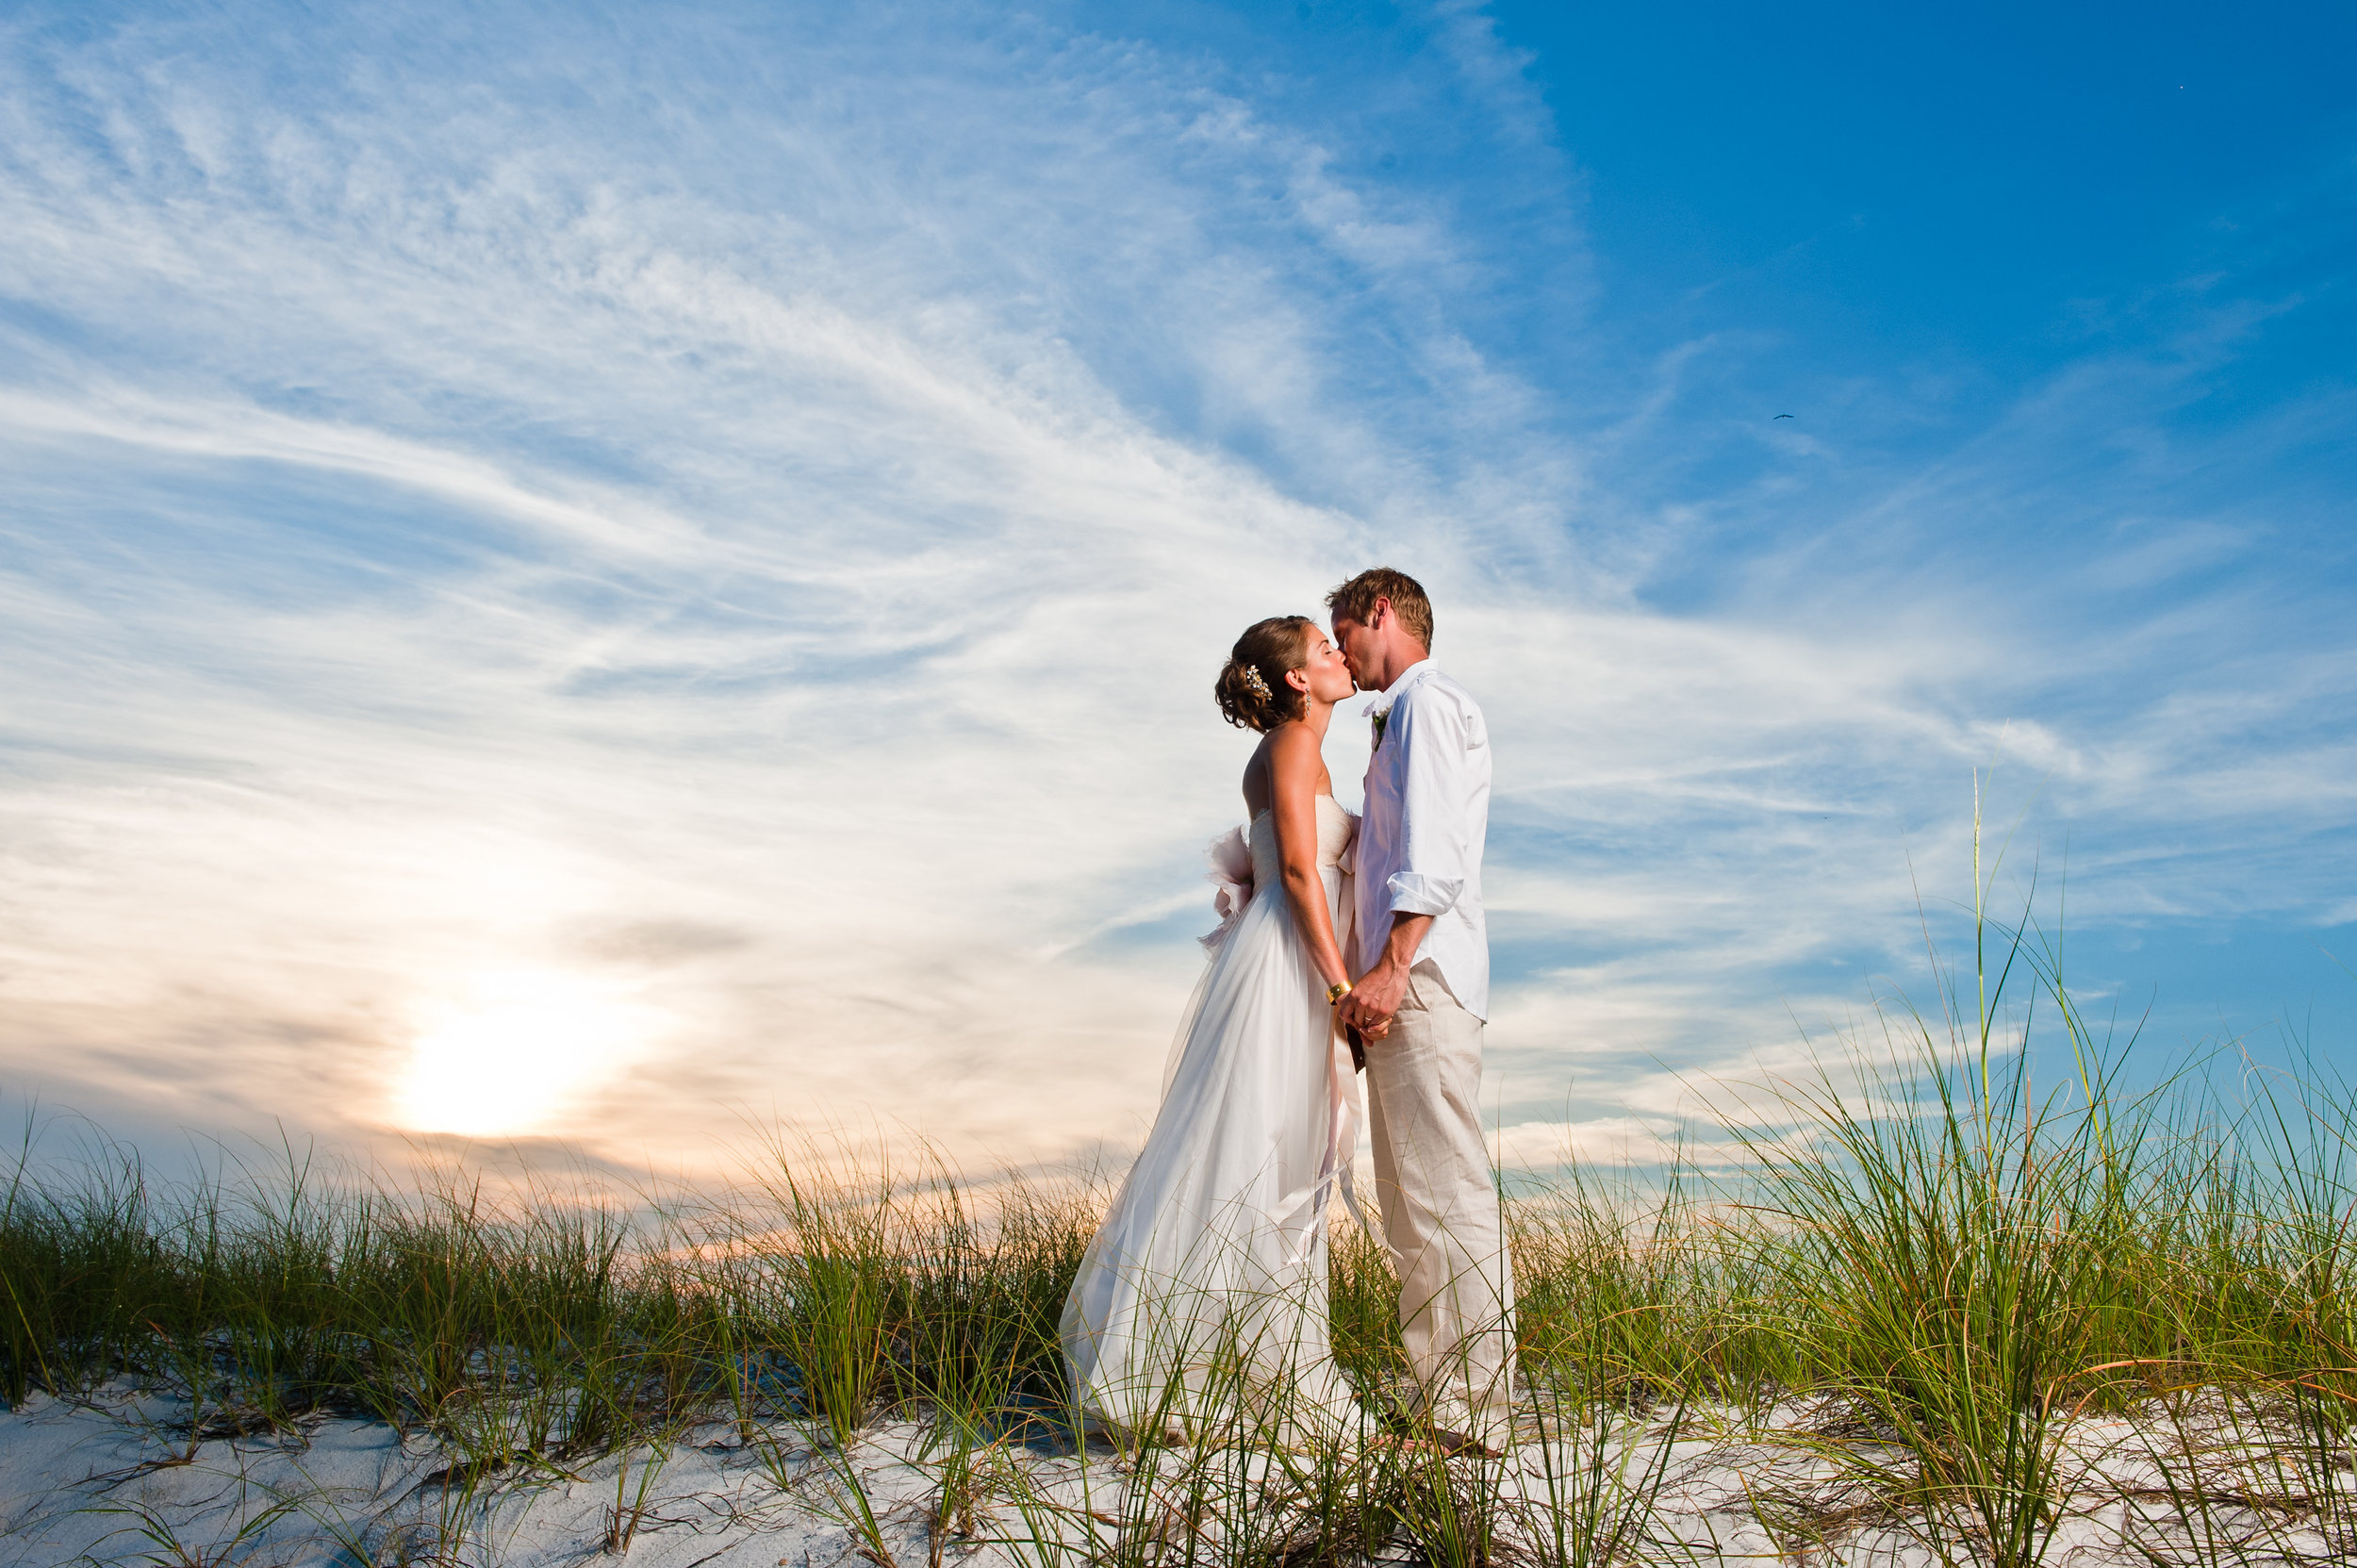 Bride and groom at a destination beach wedding in Florida, photographed by Scott Myers